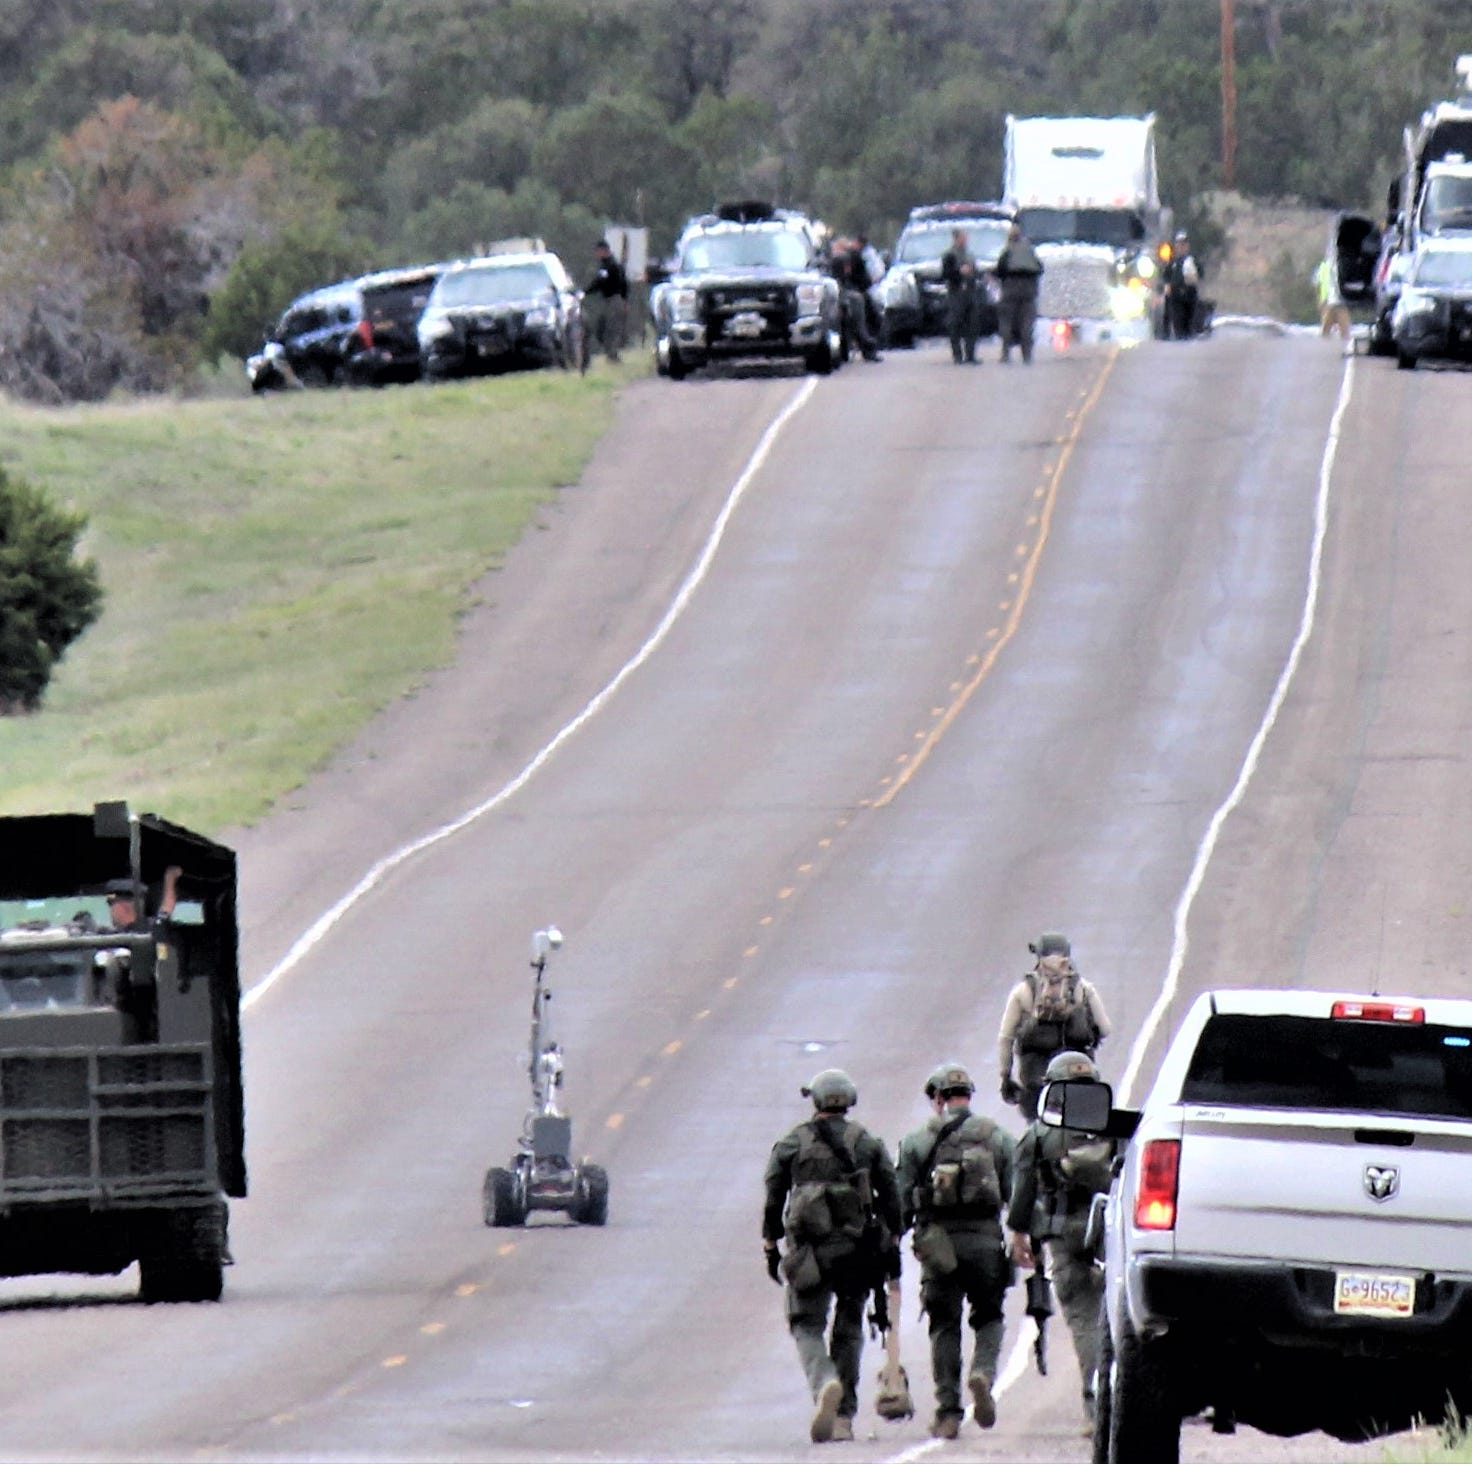 Lincoln County Sheriff: Standoff ends in arrest